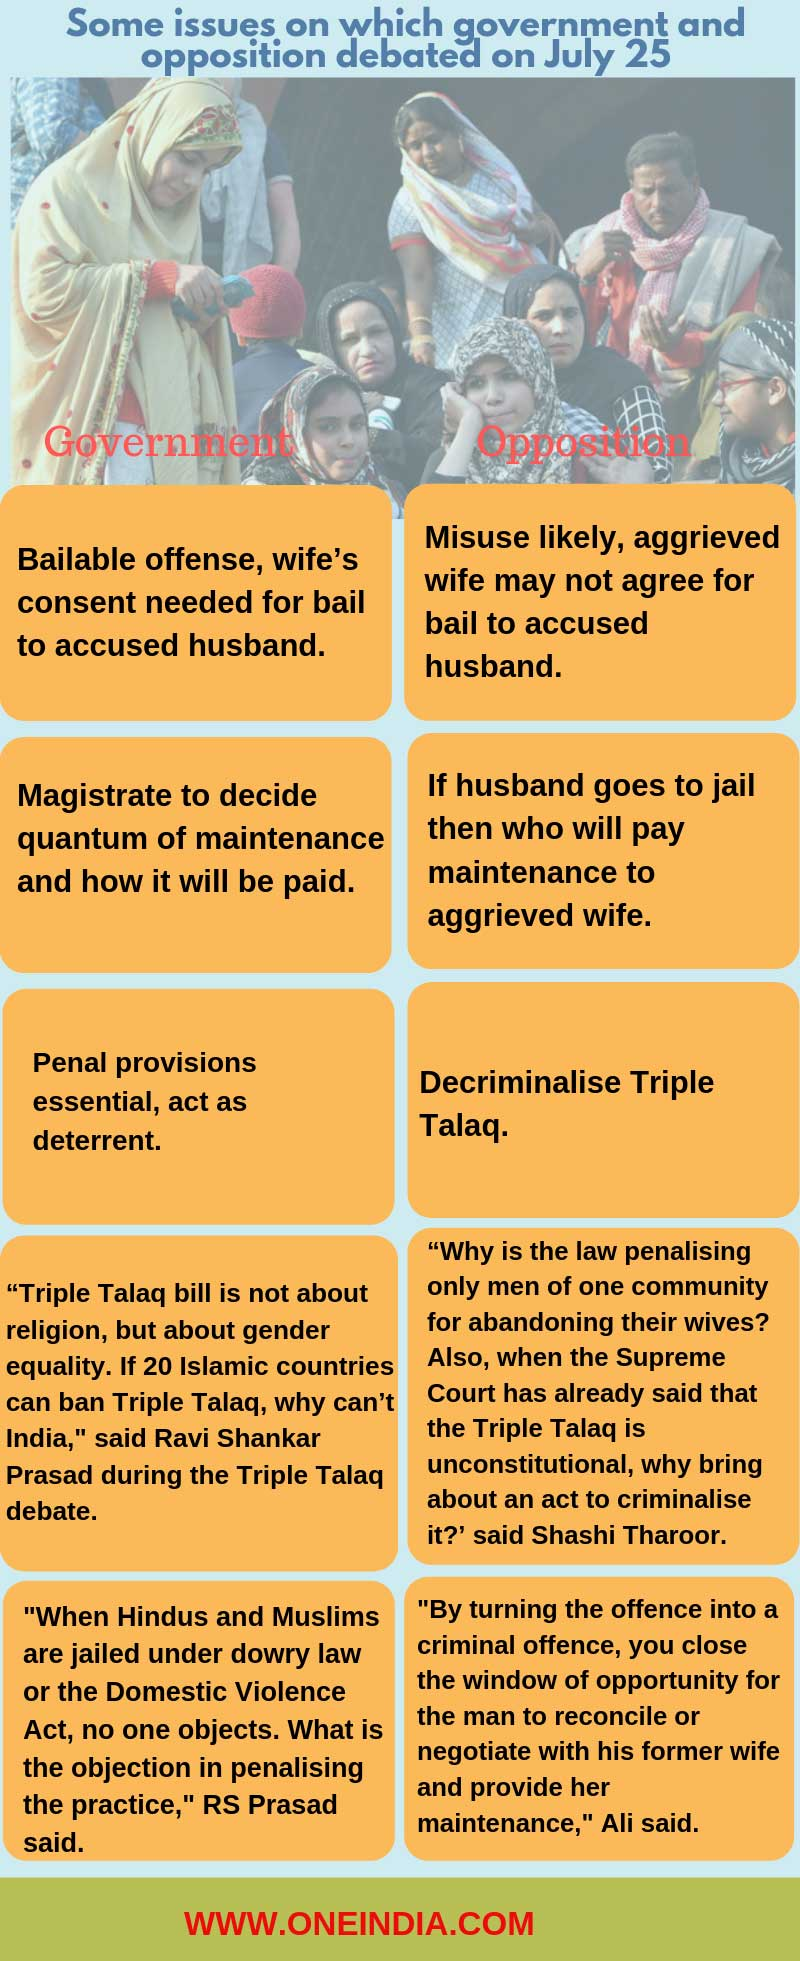 Triple Talaq bill: Main points of contention between Govt, opposition